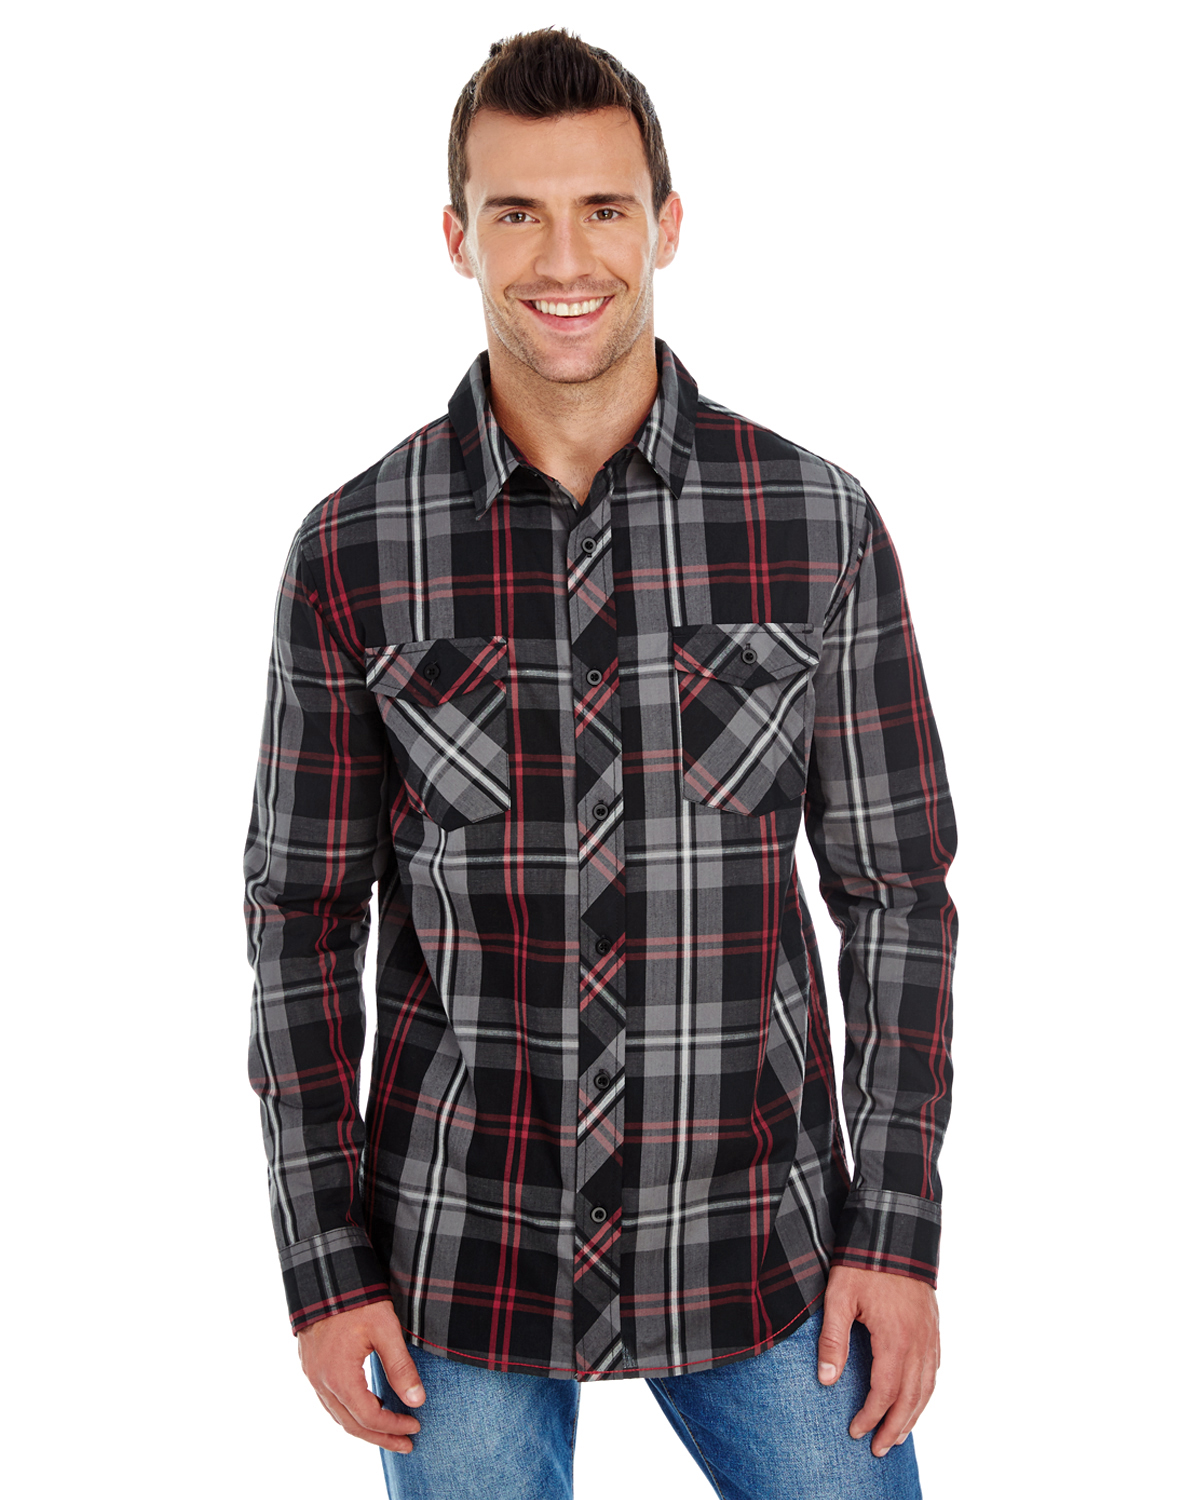 B8202 - Burnside Men's Long-Sleeve Plaid Pattern Woven Shirt (5 colors)